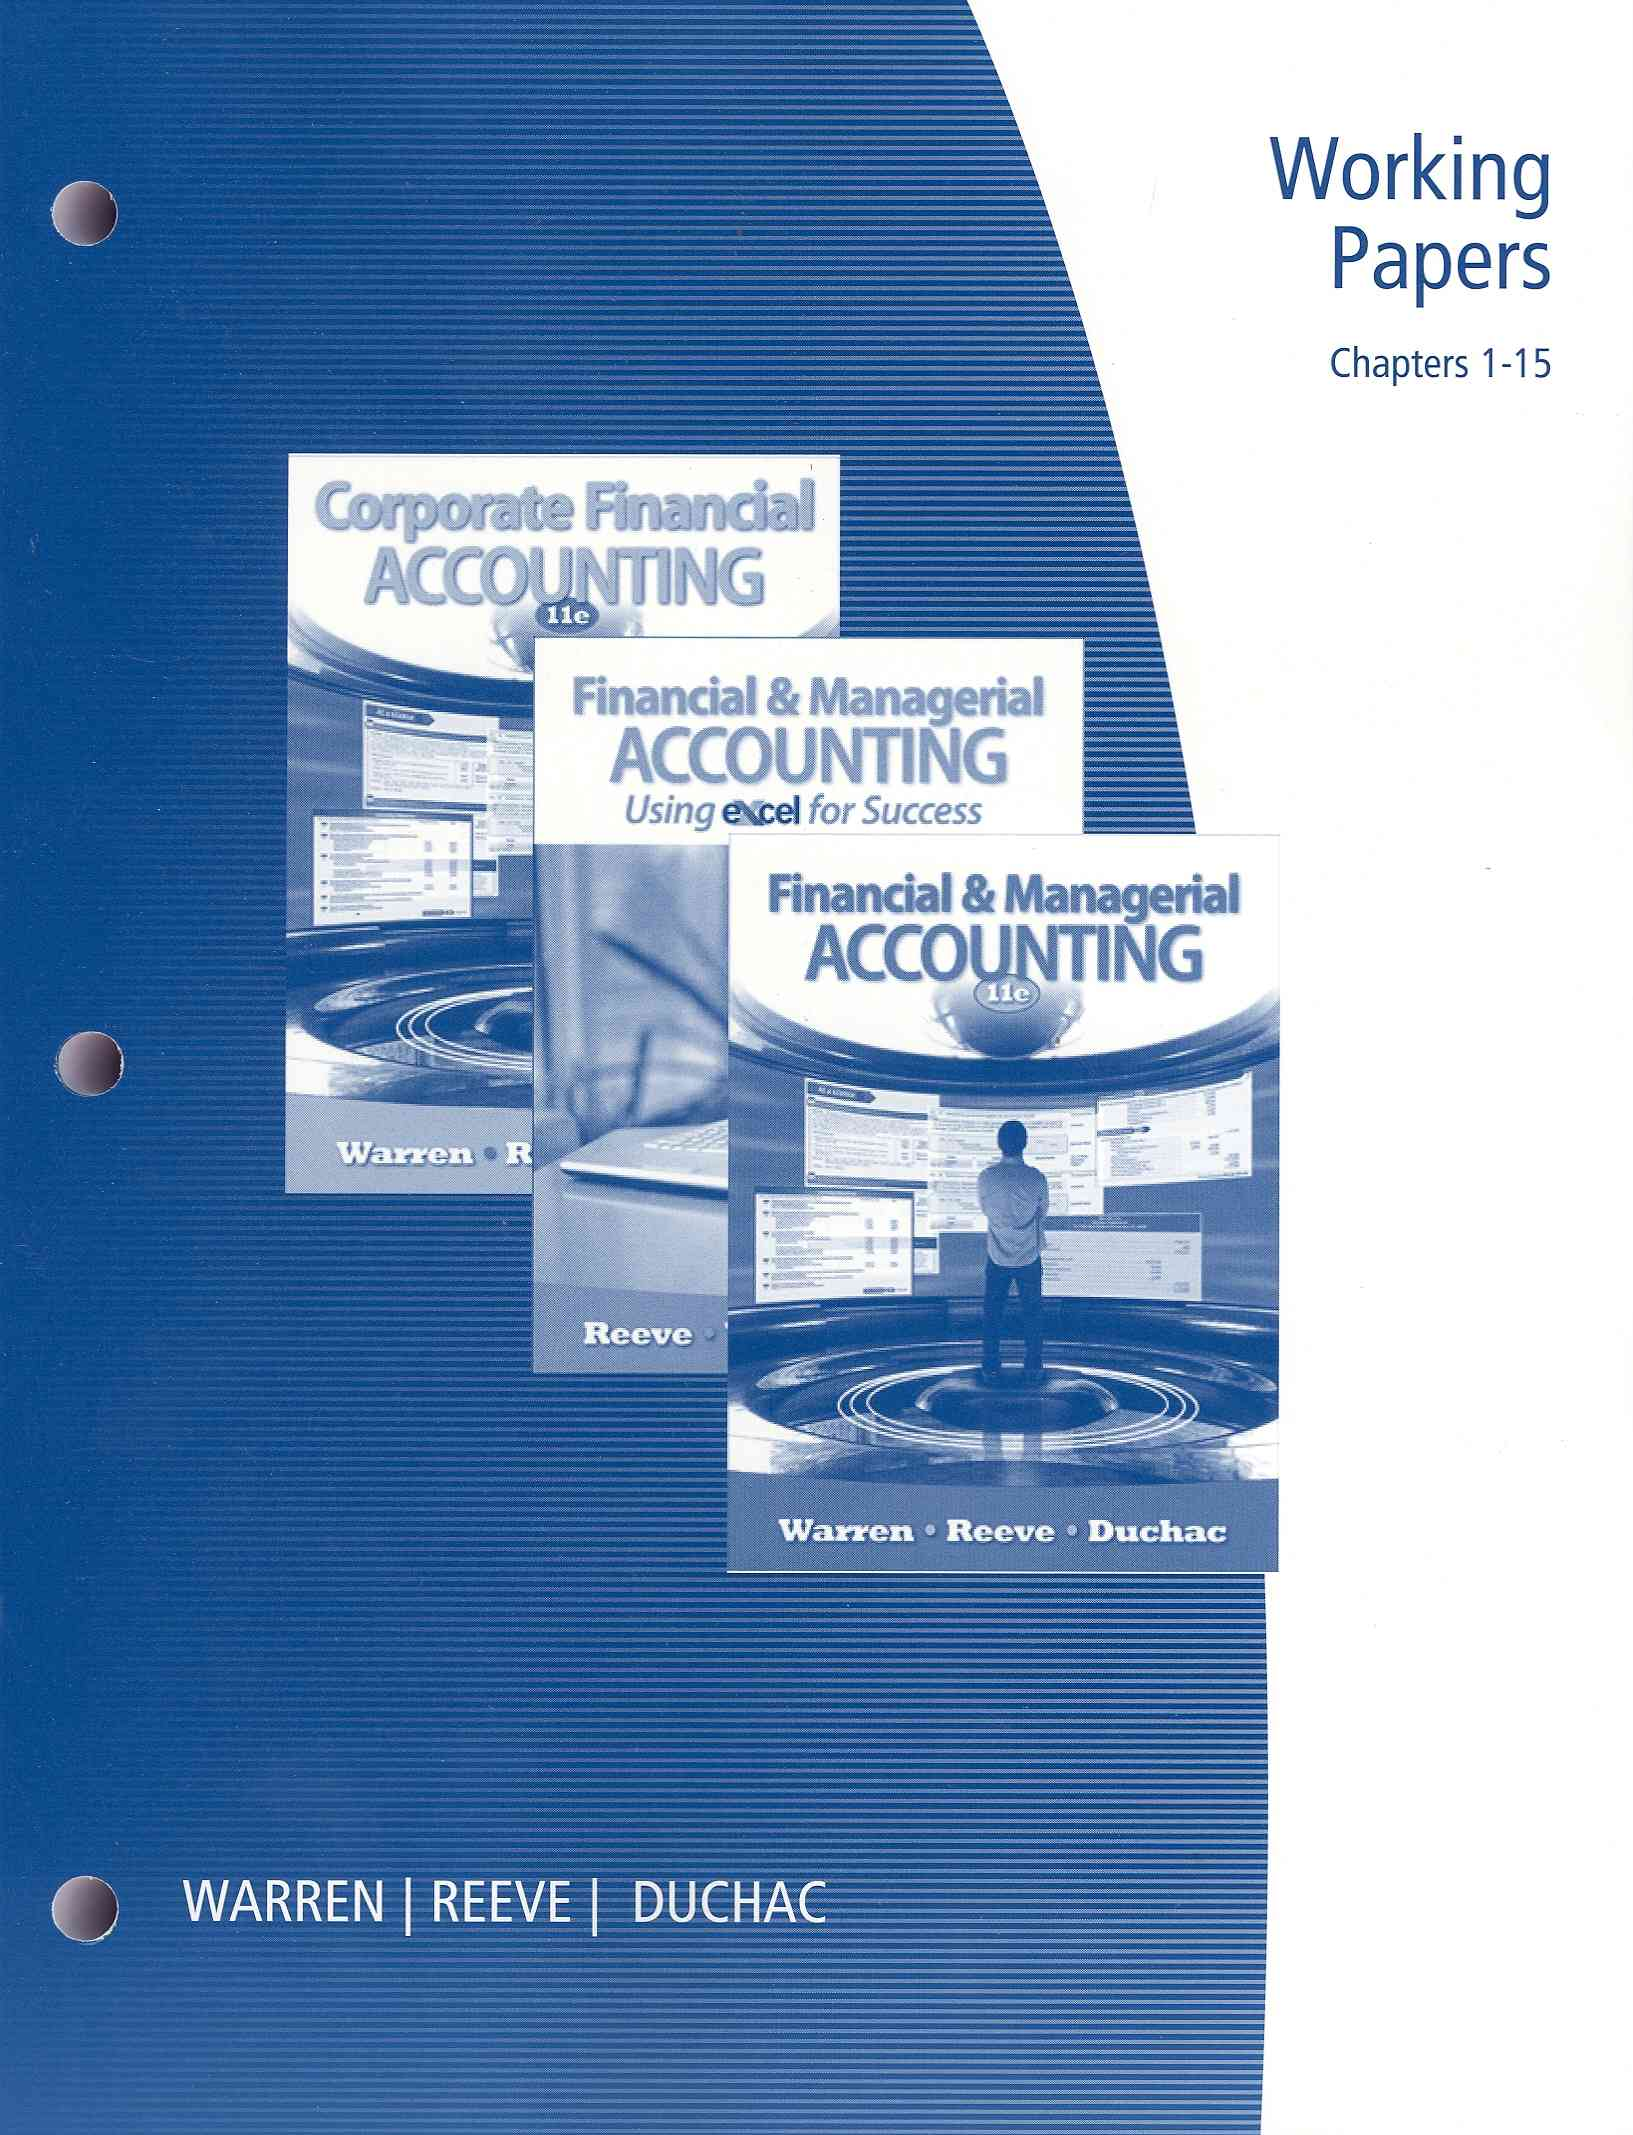 jiambalvo acccounting mgrl 4e solutions Managerial accounting, 4th edition by james jiambalvo test bank intermediate accounting 13e kieso solutions manual 4th edition by james jiambalvo solution.